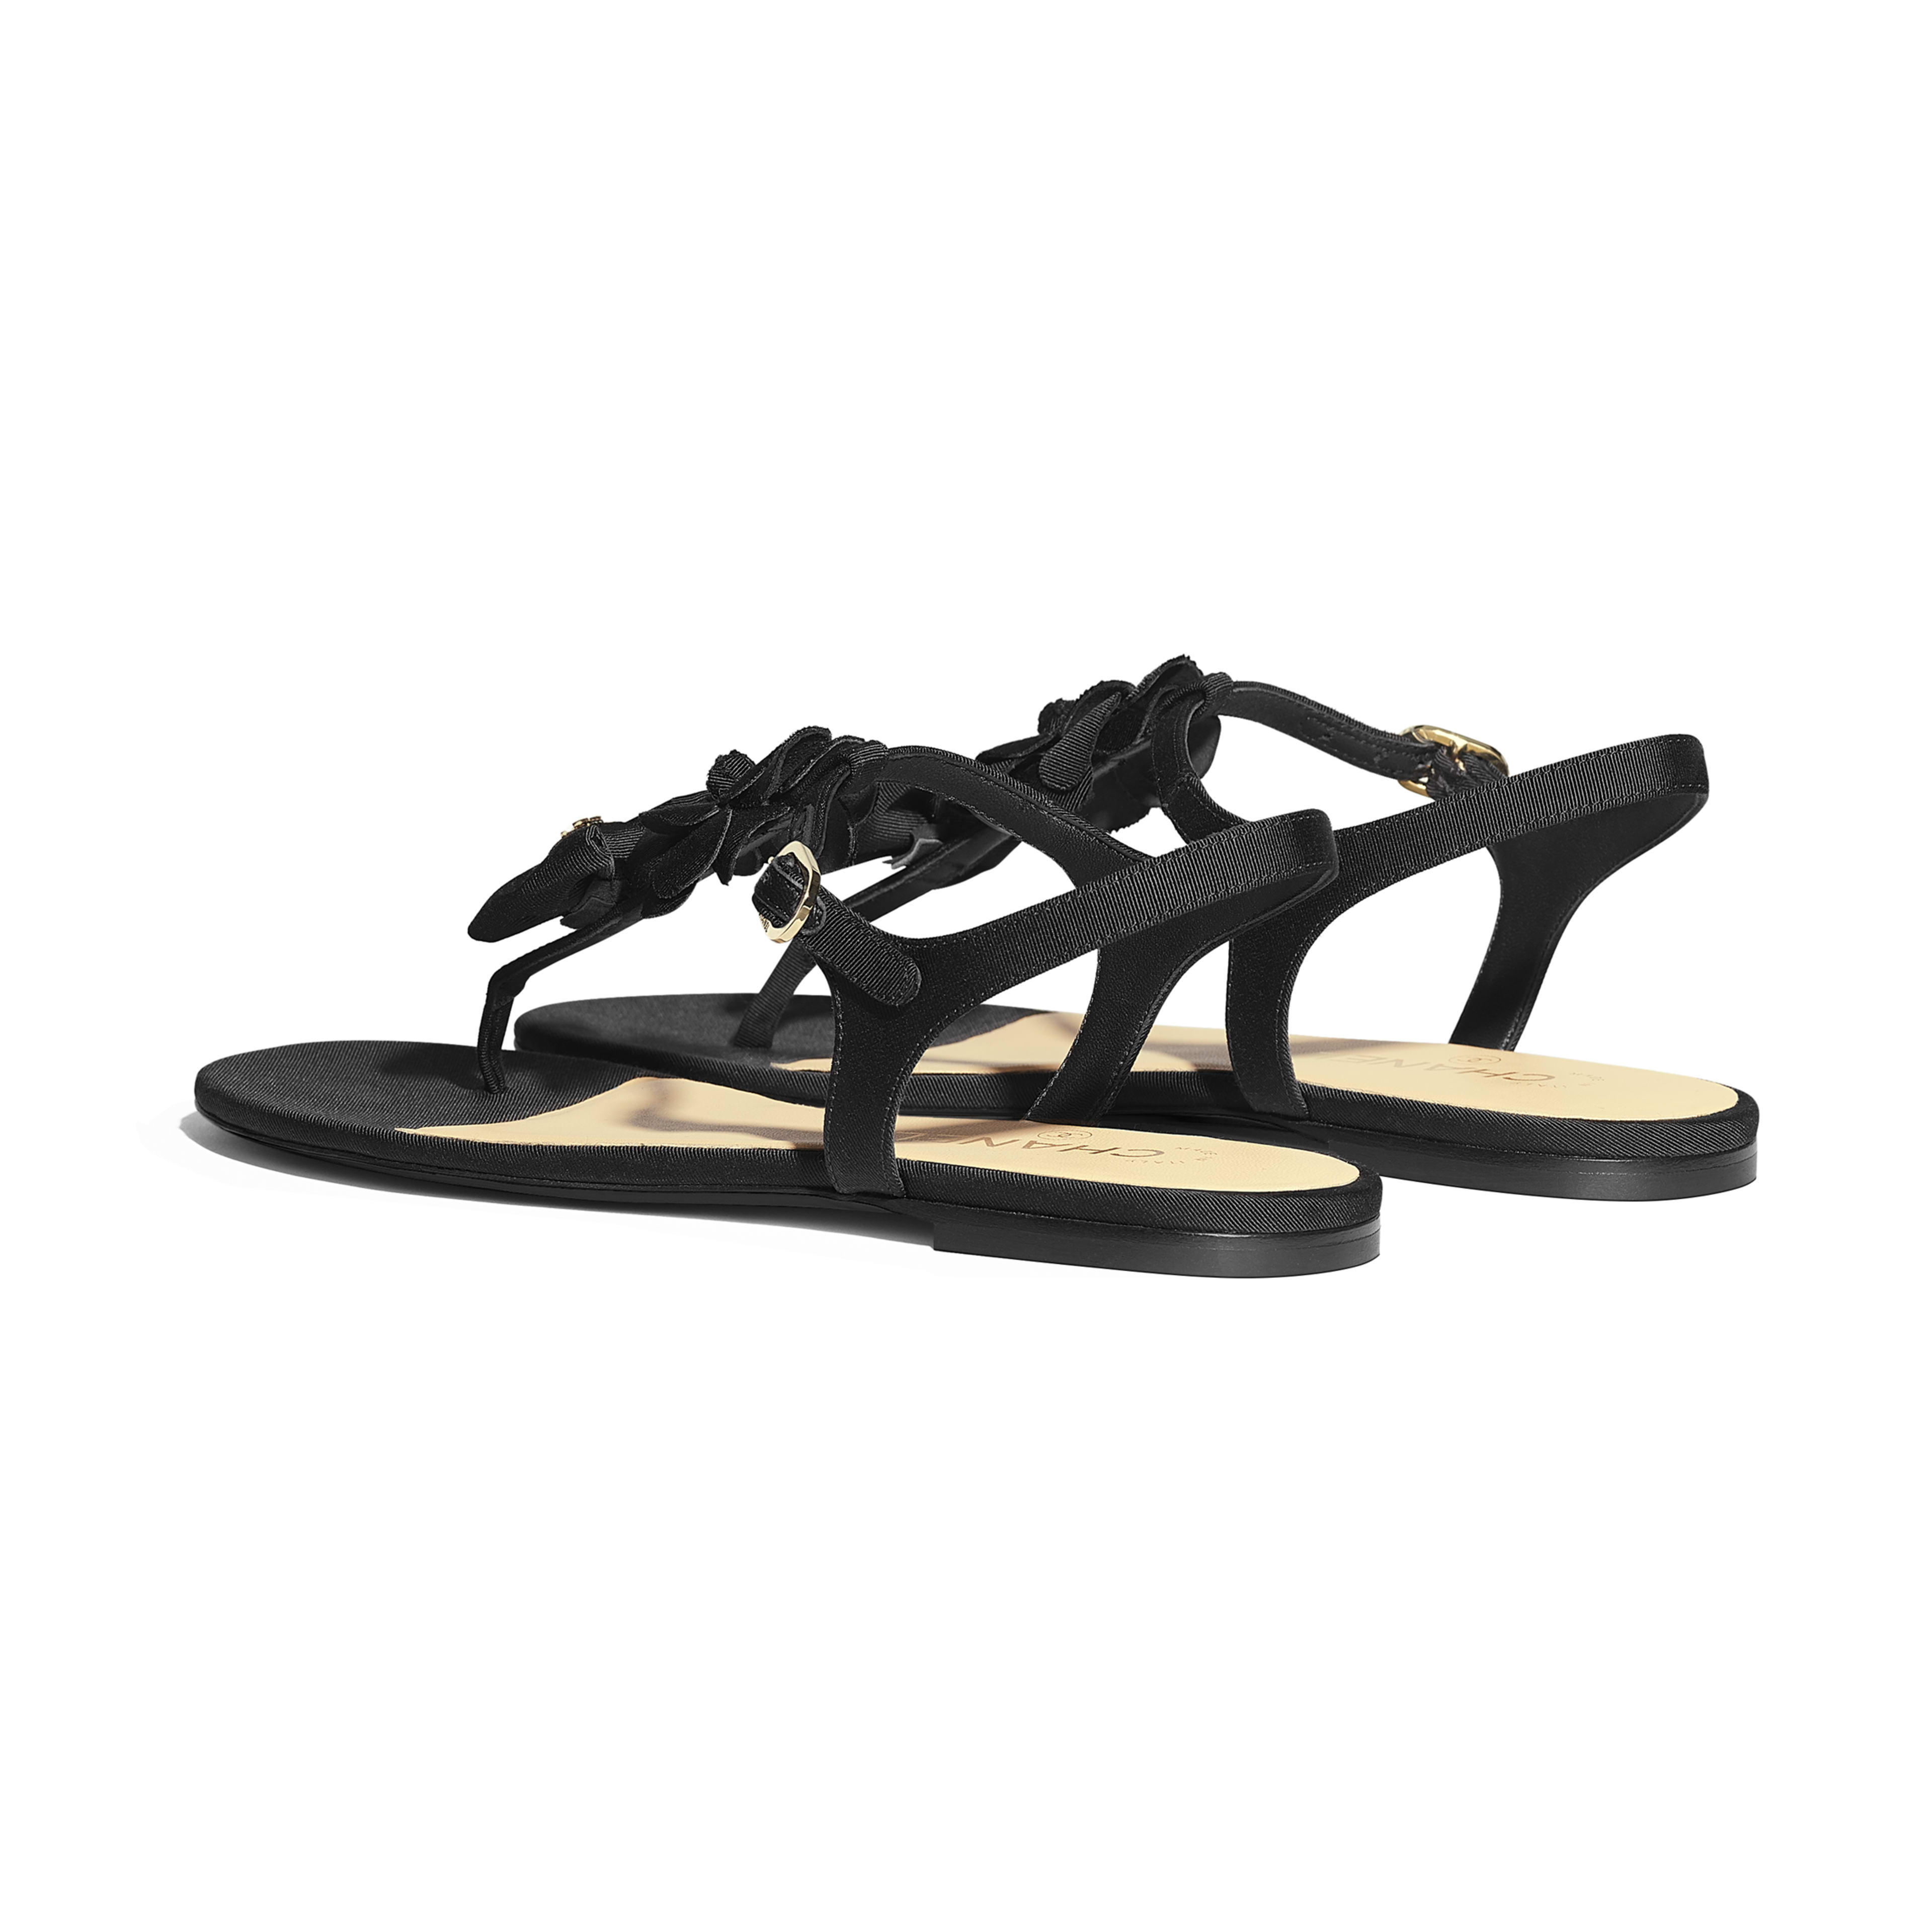 Sandals - Black - Grosgrain - Other view - see full sized version